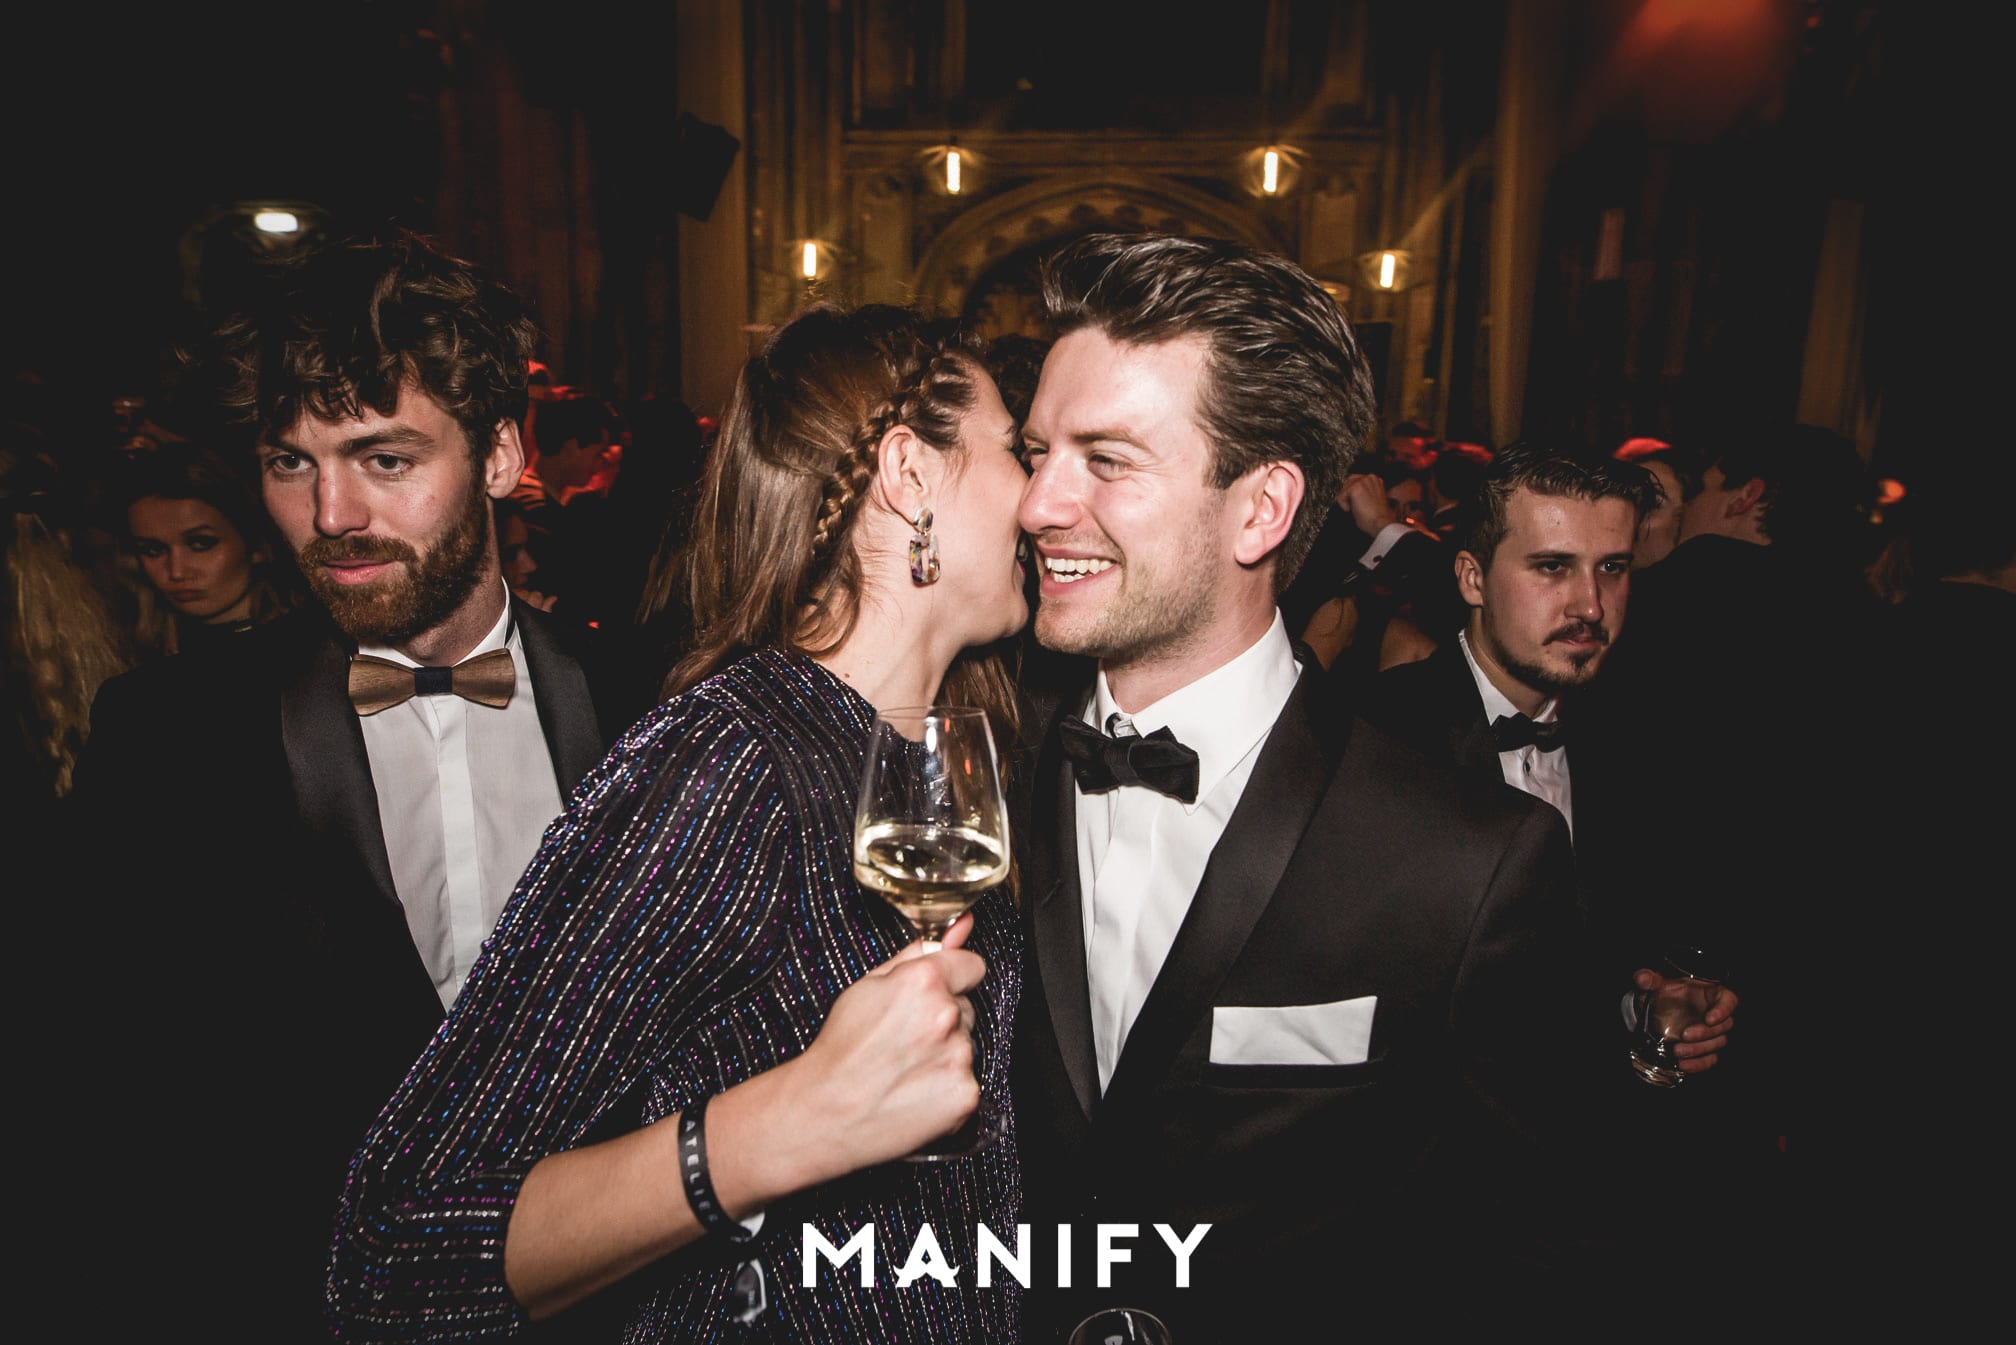 MANIFY_Out_of_office-Orangerie-06-12-19_WM-185-manify